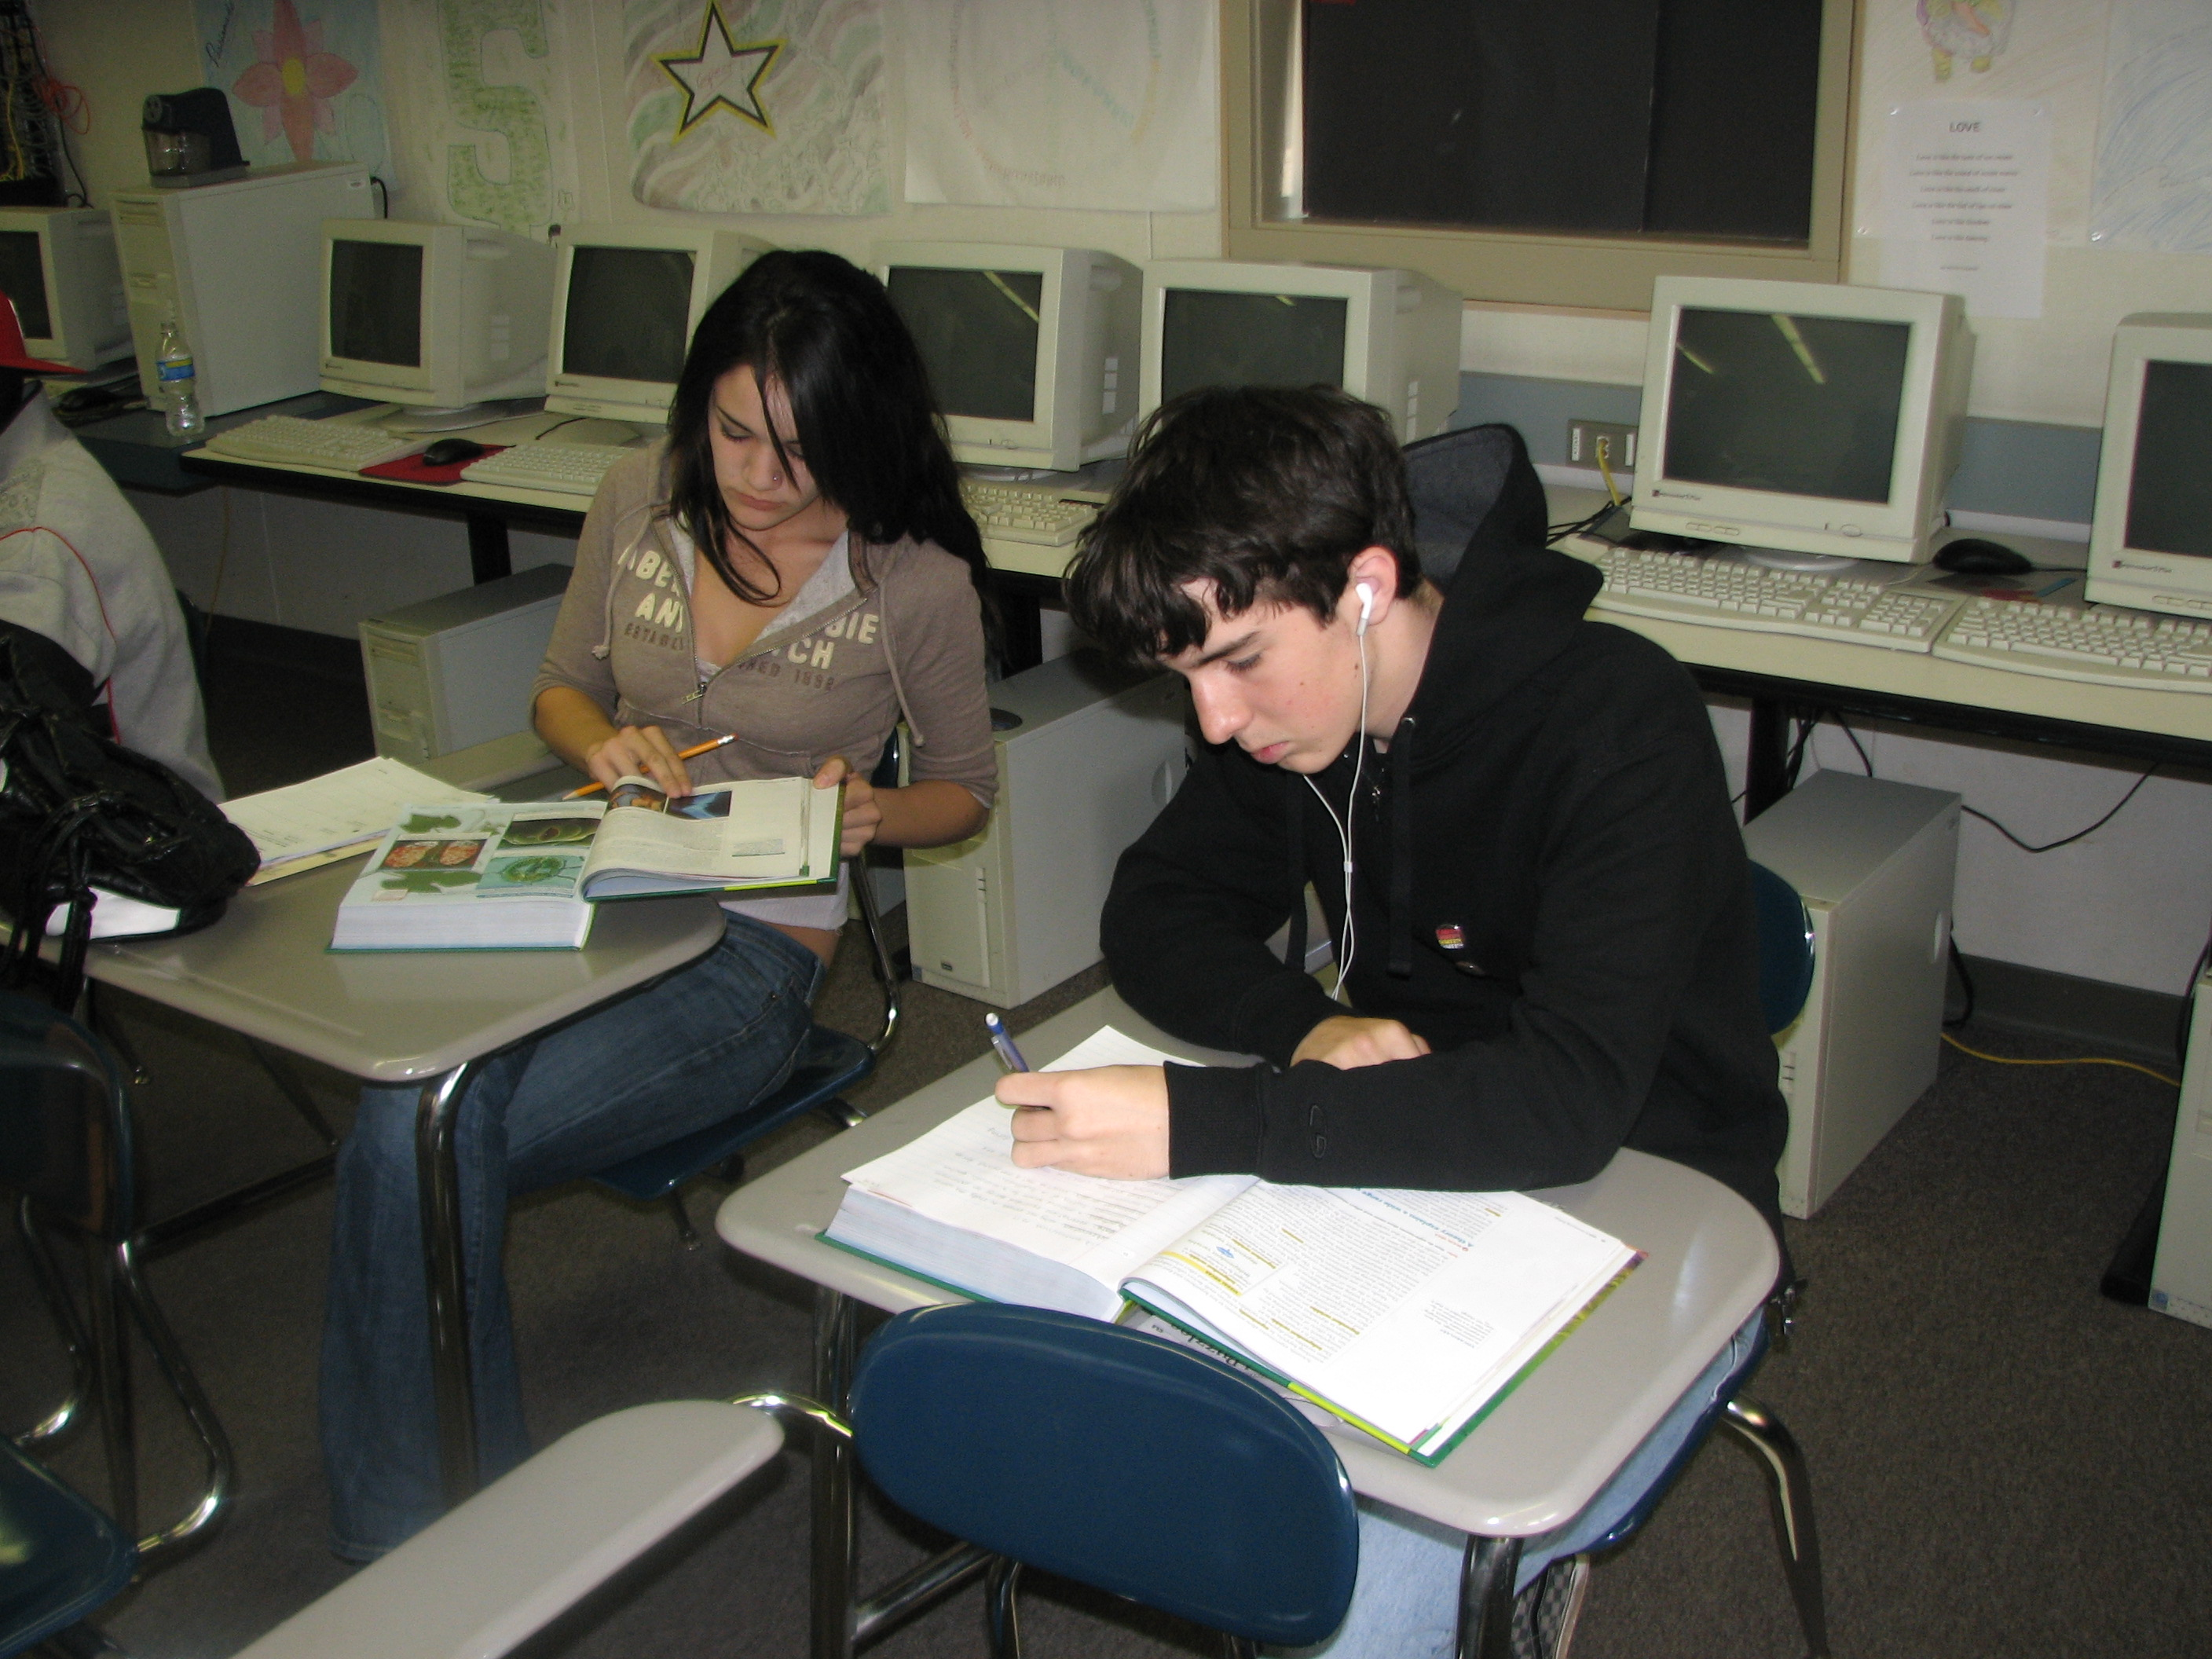 Alternative Education Students working at their desks in a classroom